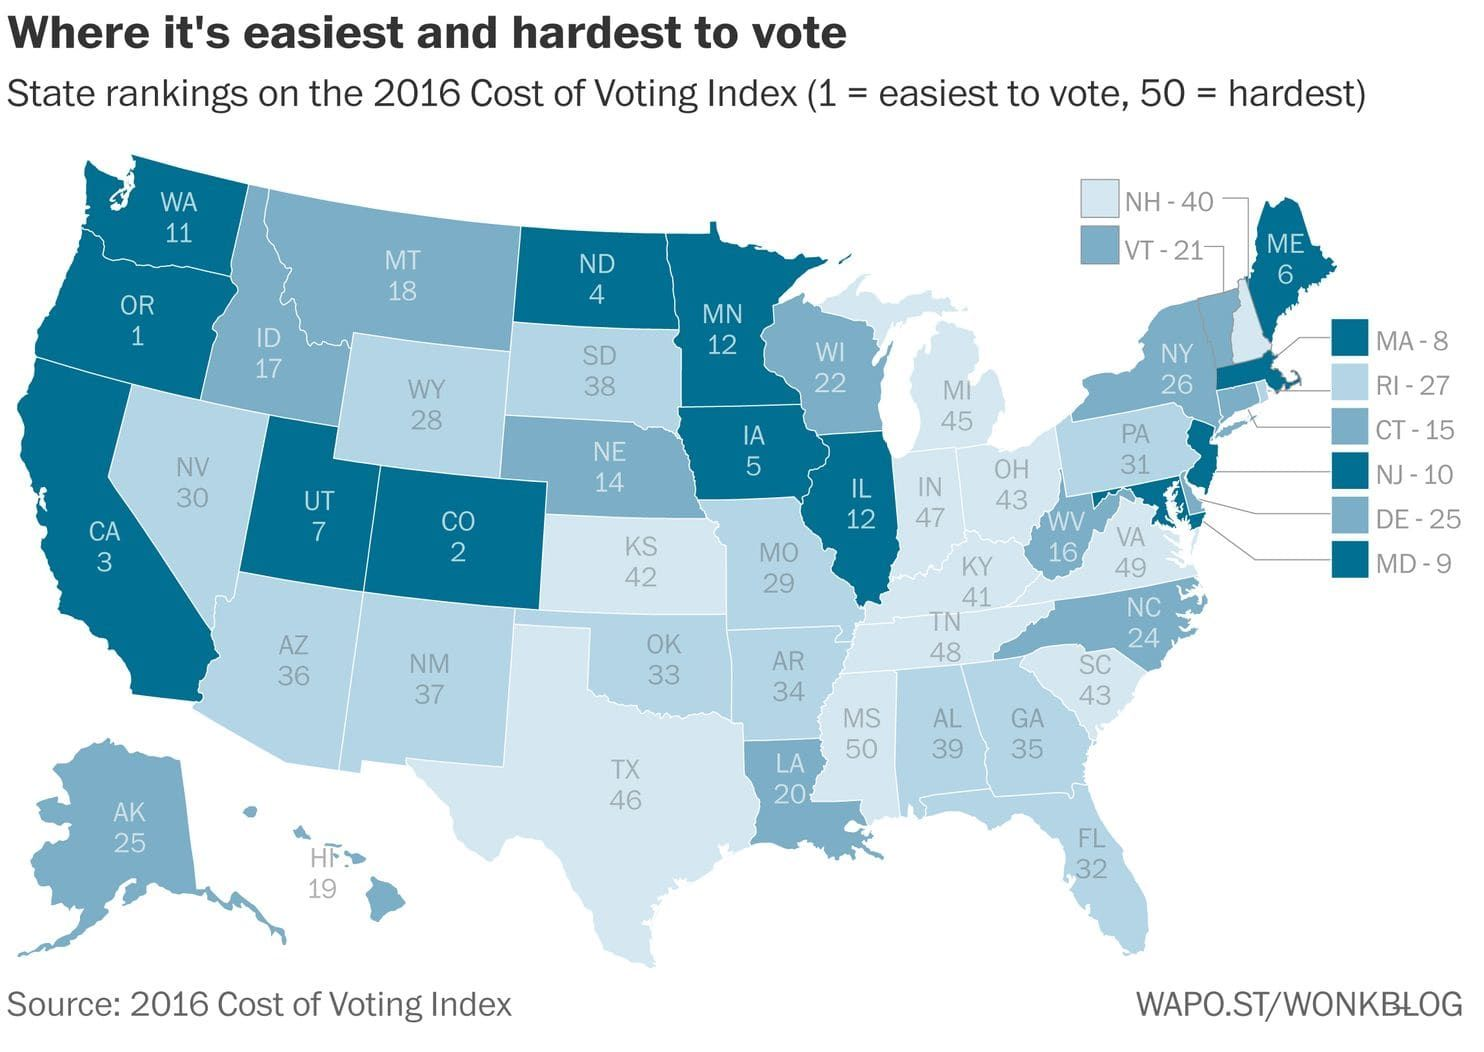 Pin on Voting rights, suppression, gerrymandering